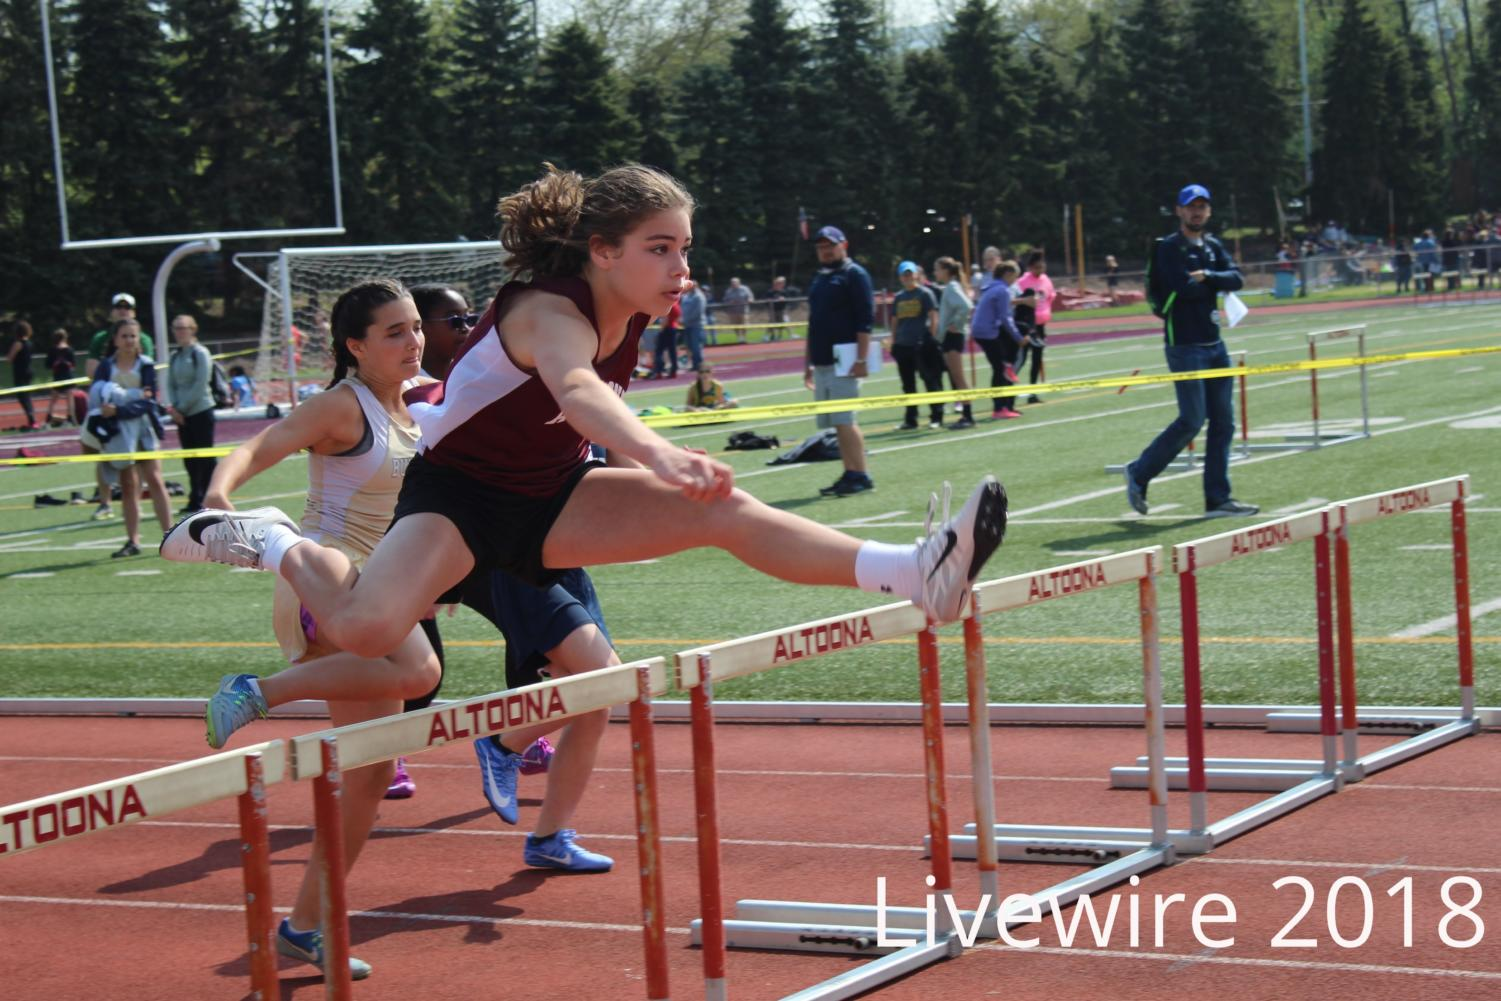 Hurdle. Gwyenth Rentz jumps over a hurdle at the track meet on May 12. Rentz jumped and then recorded her time.